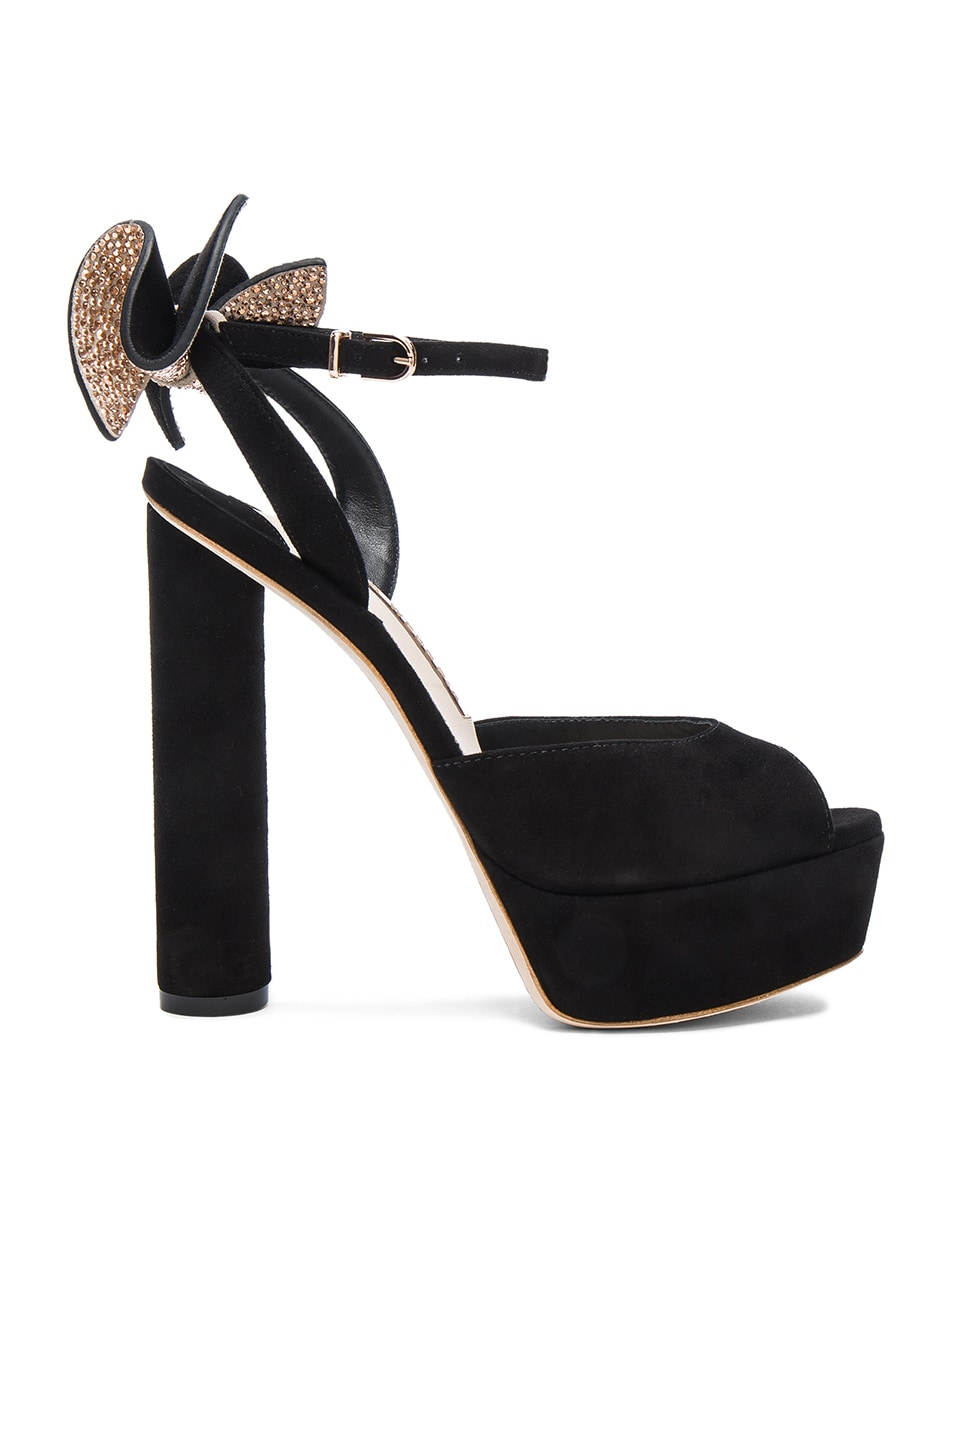 Image 1 of Sophia Webster Suede Raye Platform Heels in Black